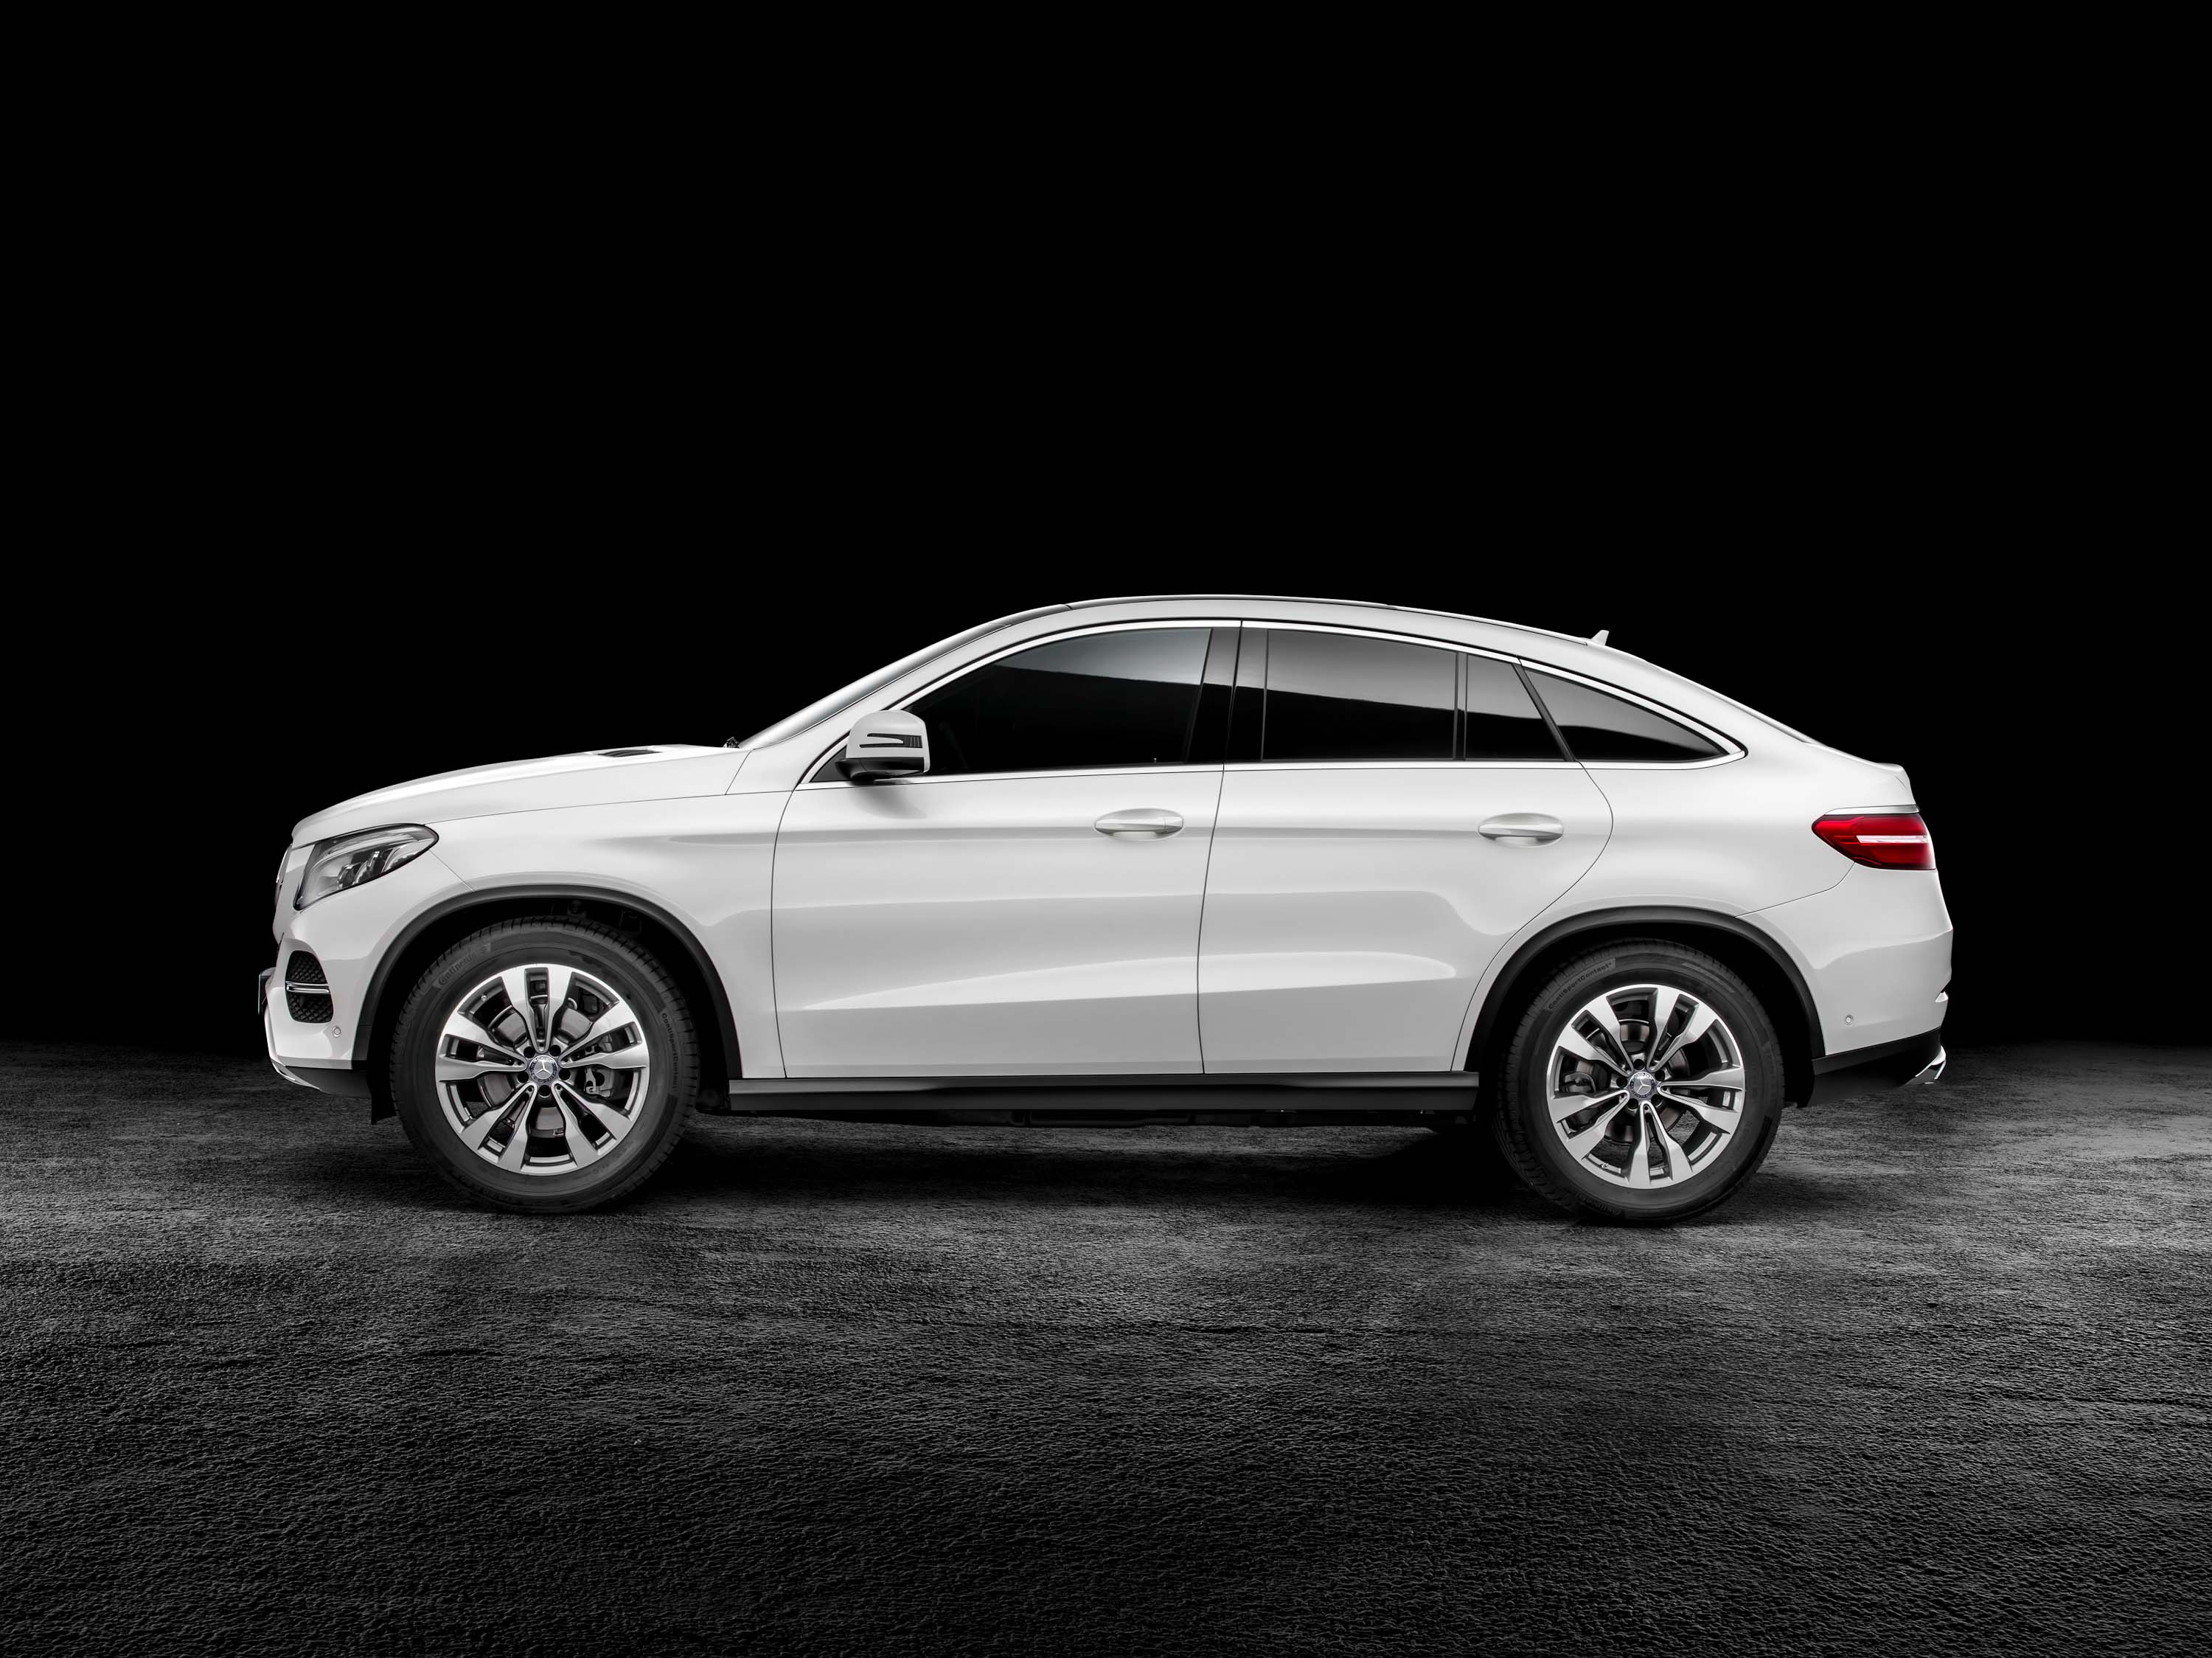 c292 mercedes benz gle coupe debuts softcore amg variant. Black Bedroom Furniture Sets. Home Design Ideas